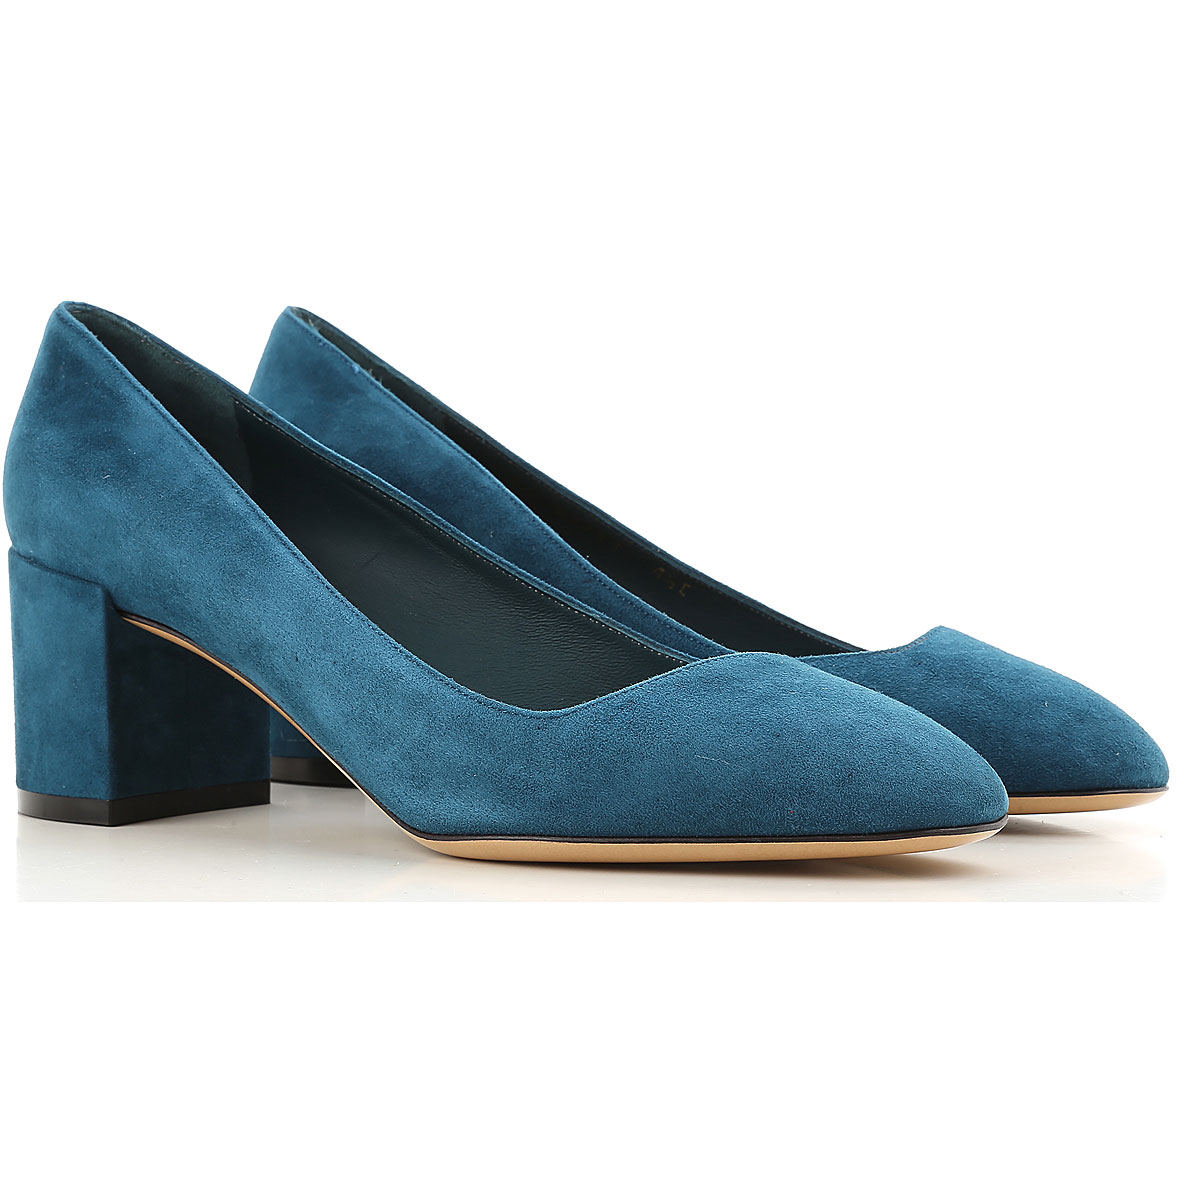 Salvatore Ferragamo Womens Shoes On Sale in Outlet, Petroleum, Suede leather, 2019, 4.5 7